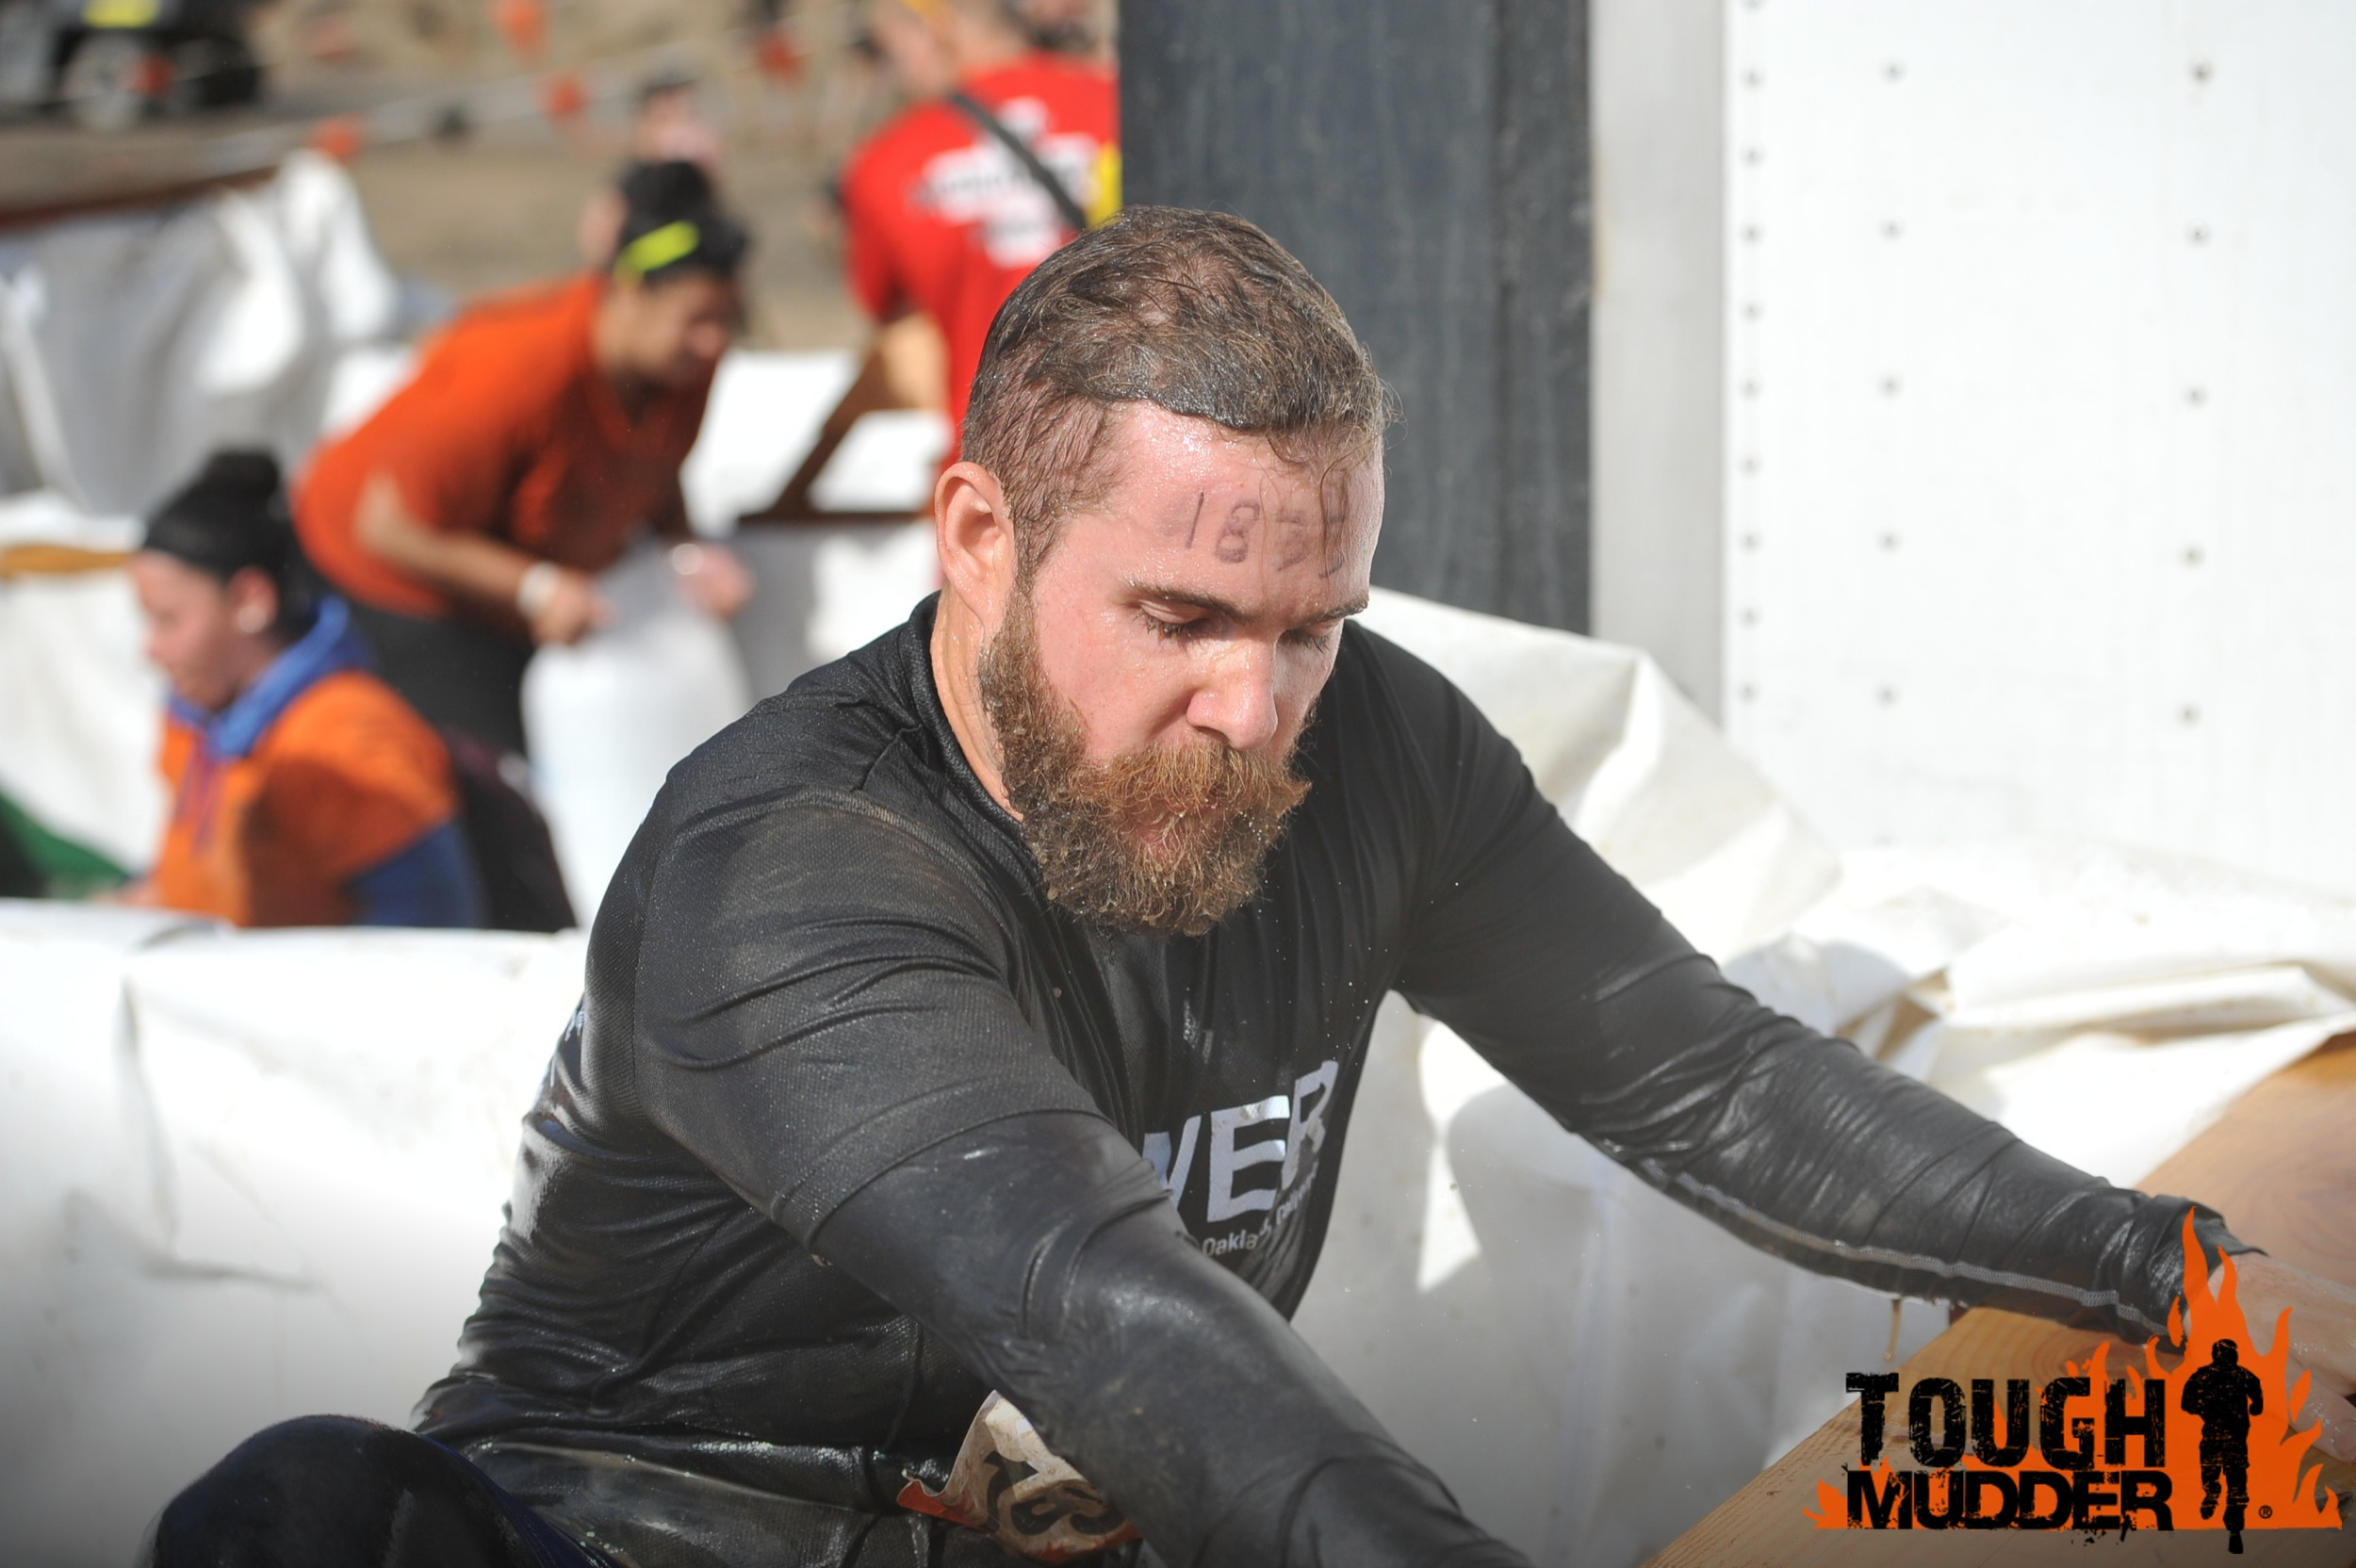 Matthew Tough Mudder